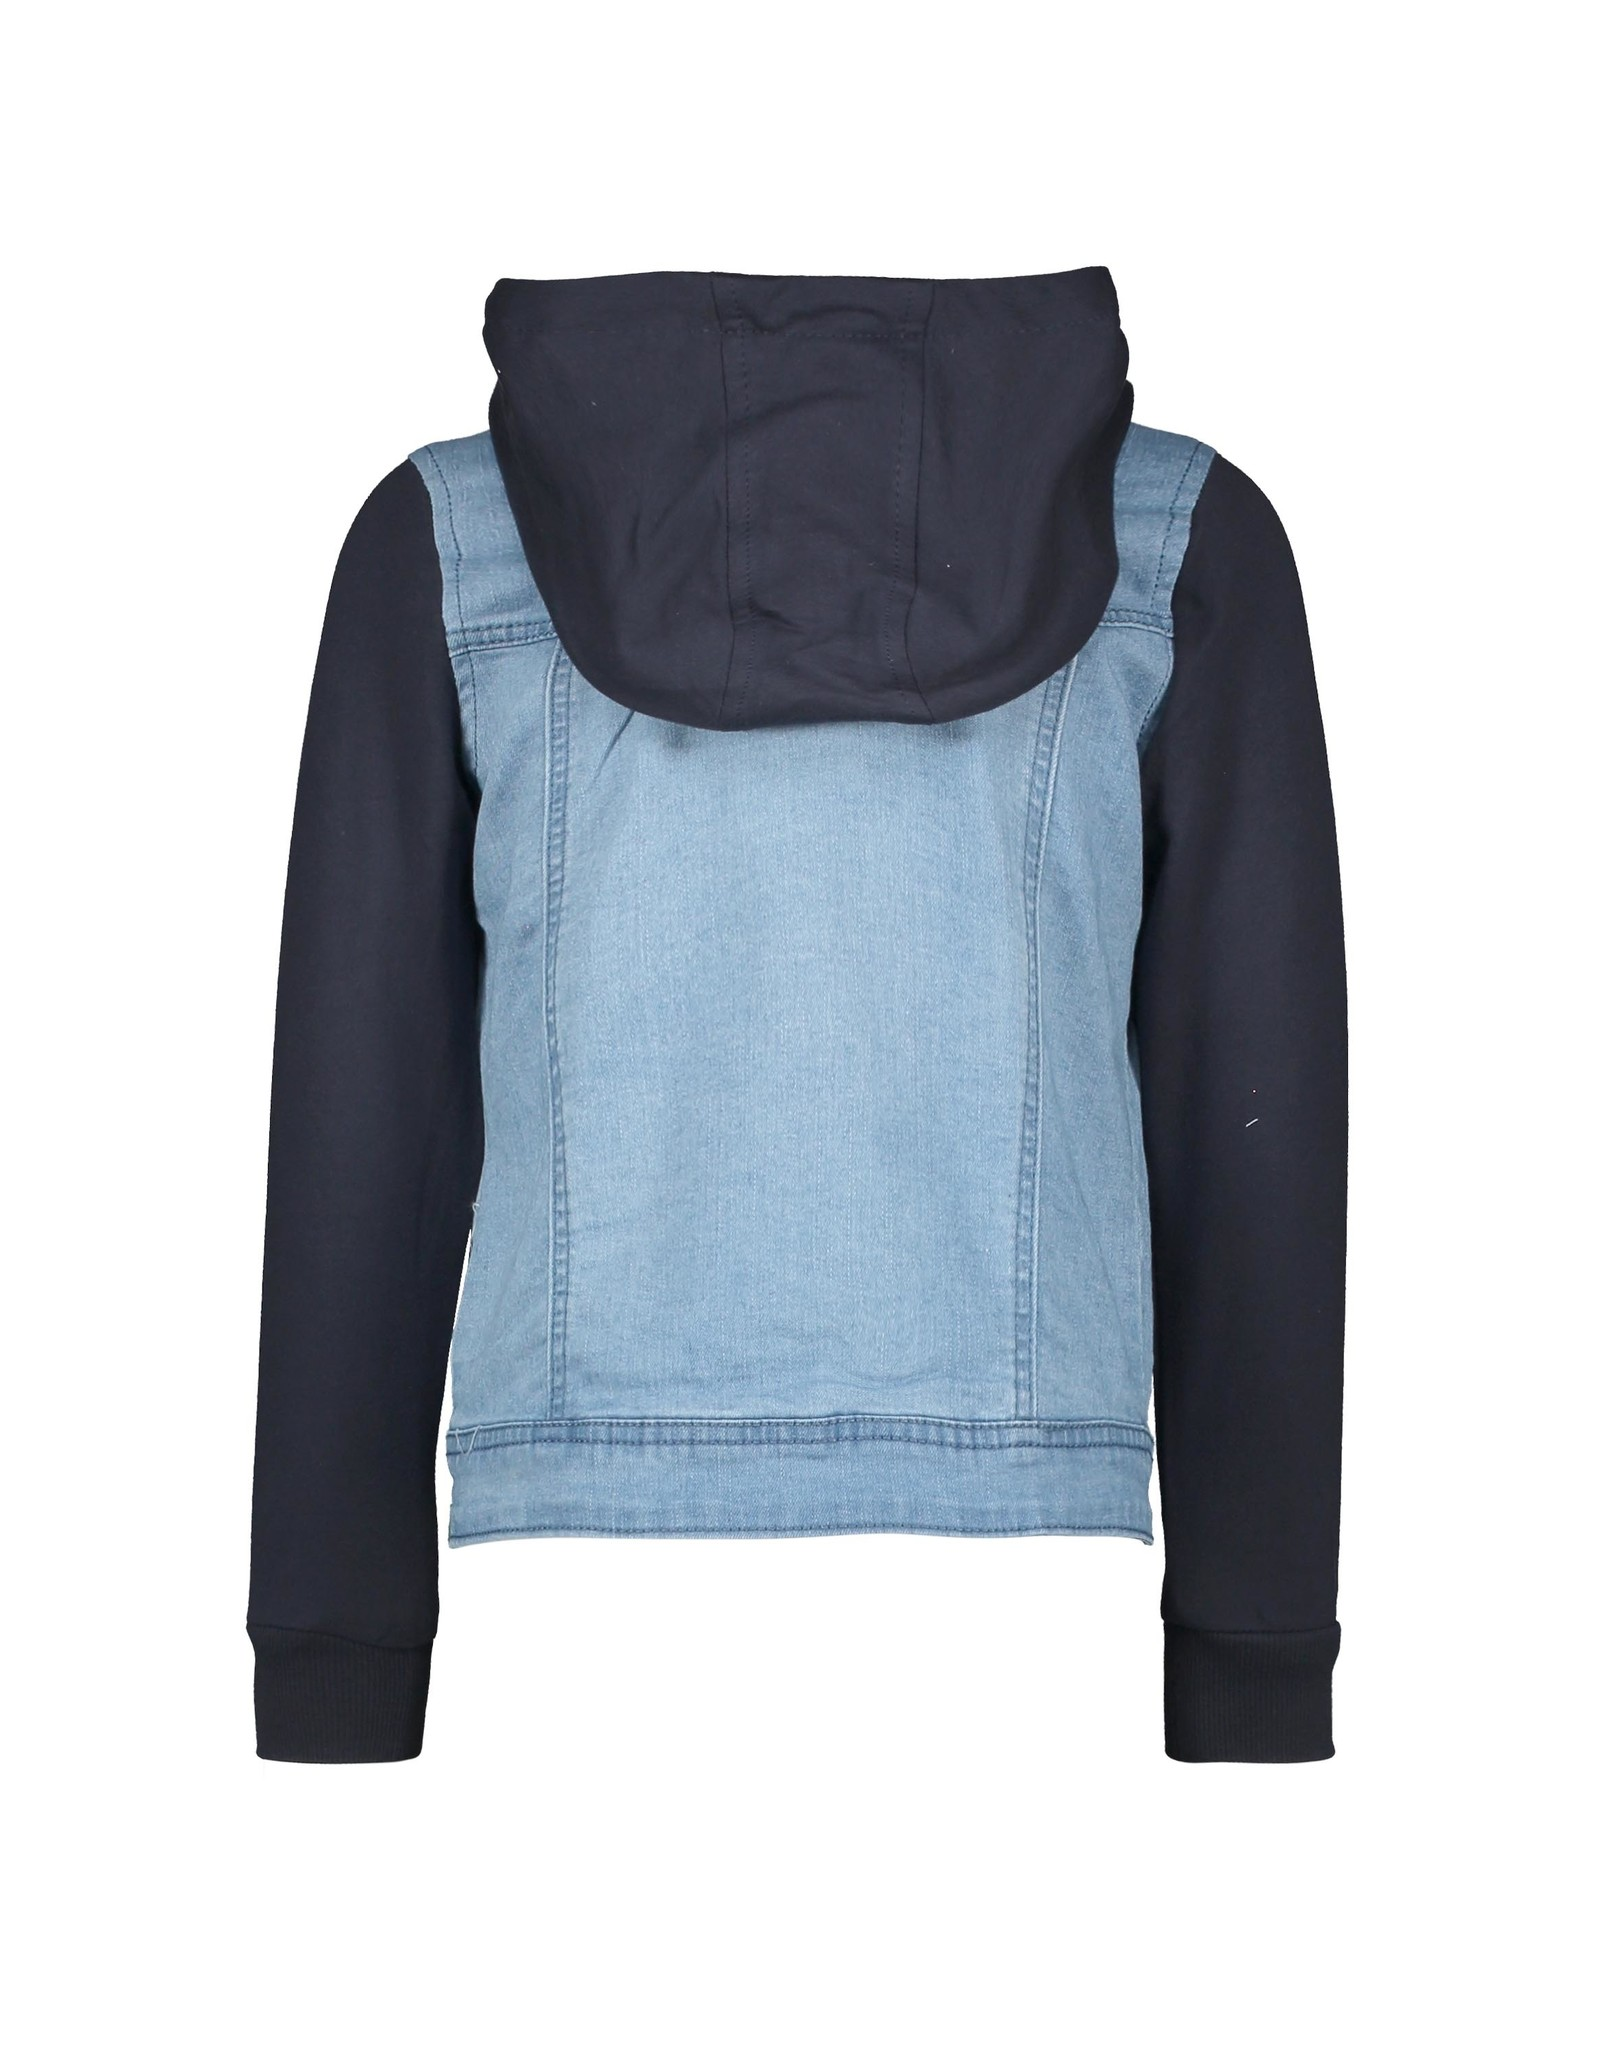 B.Nosy Boys denim jacket with sweat hood and sleeves